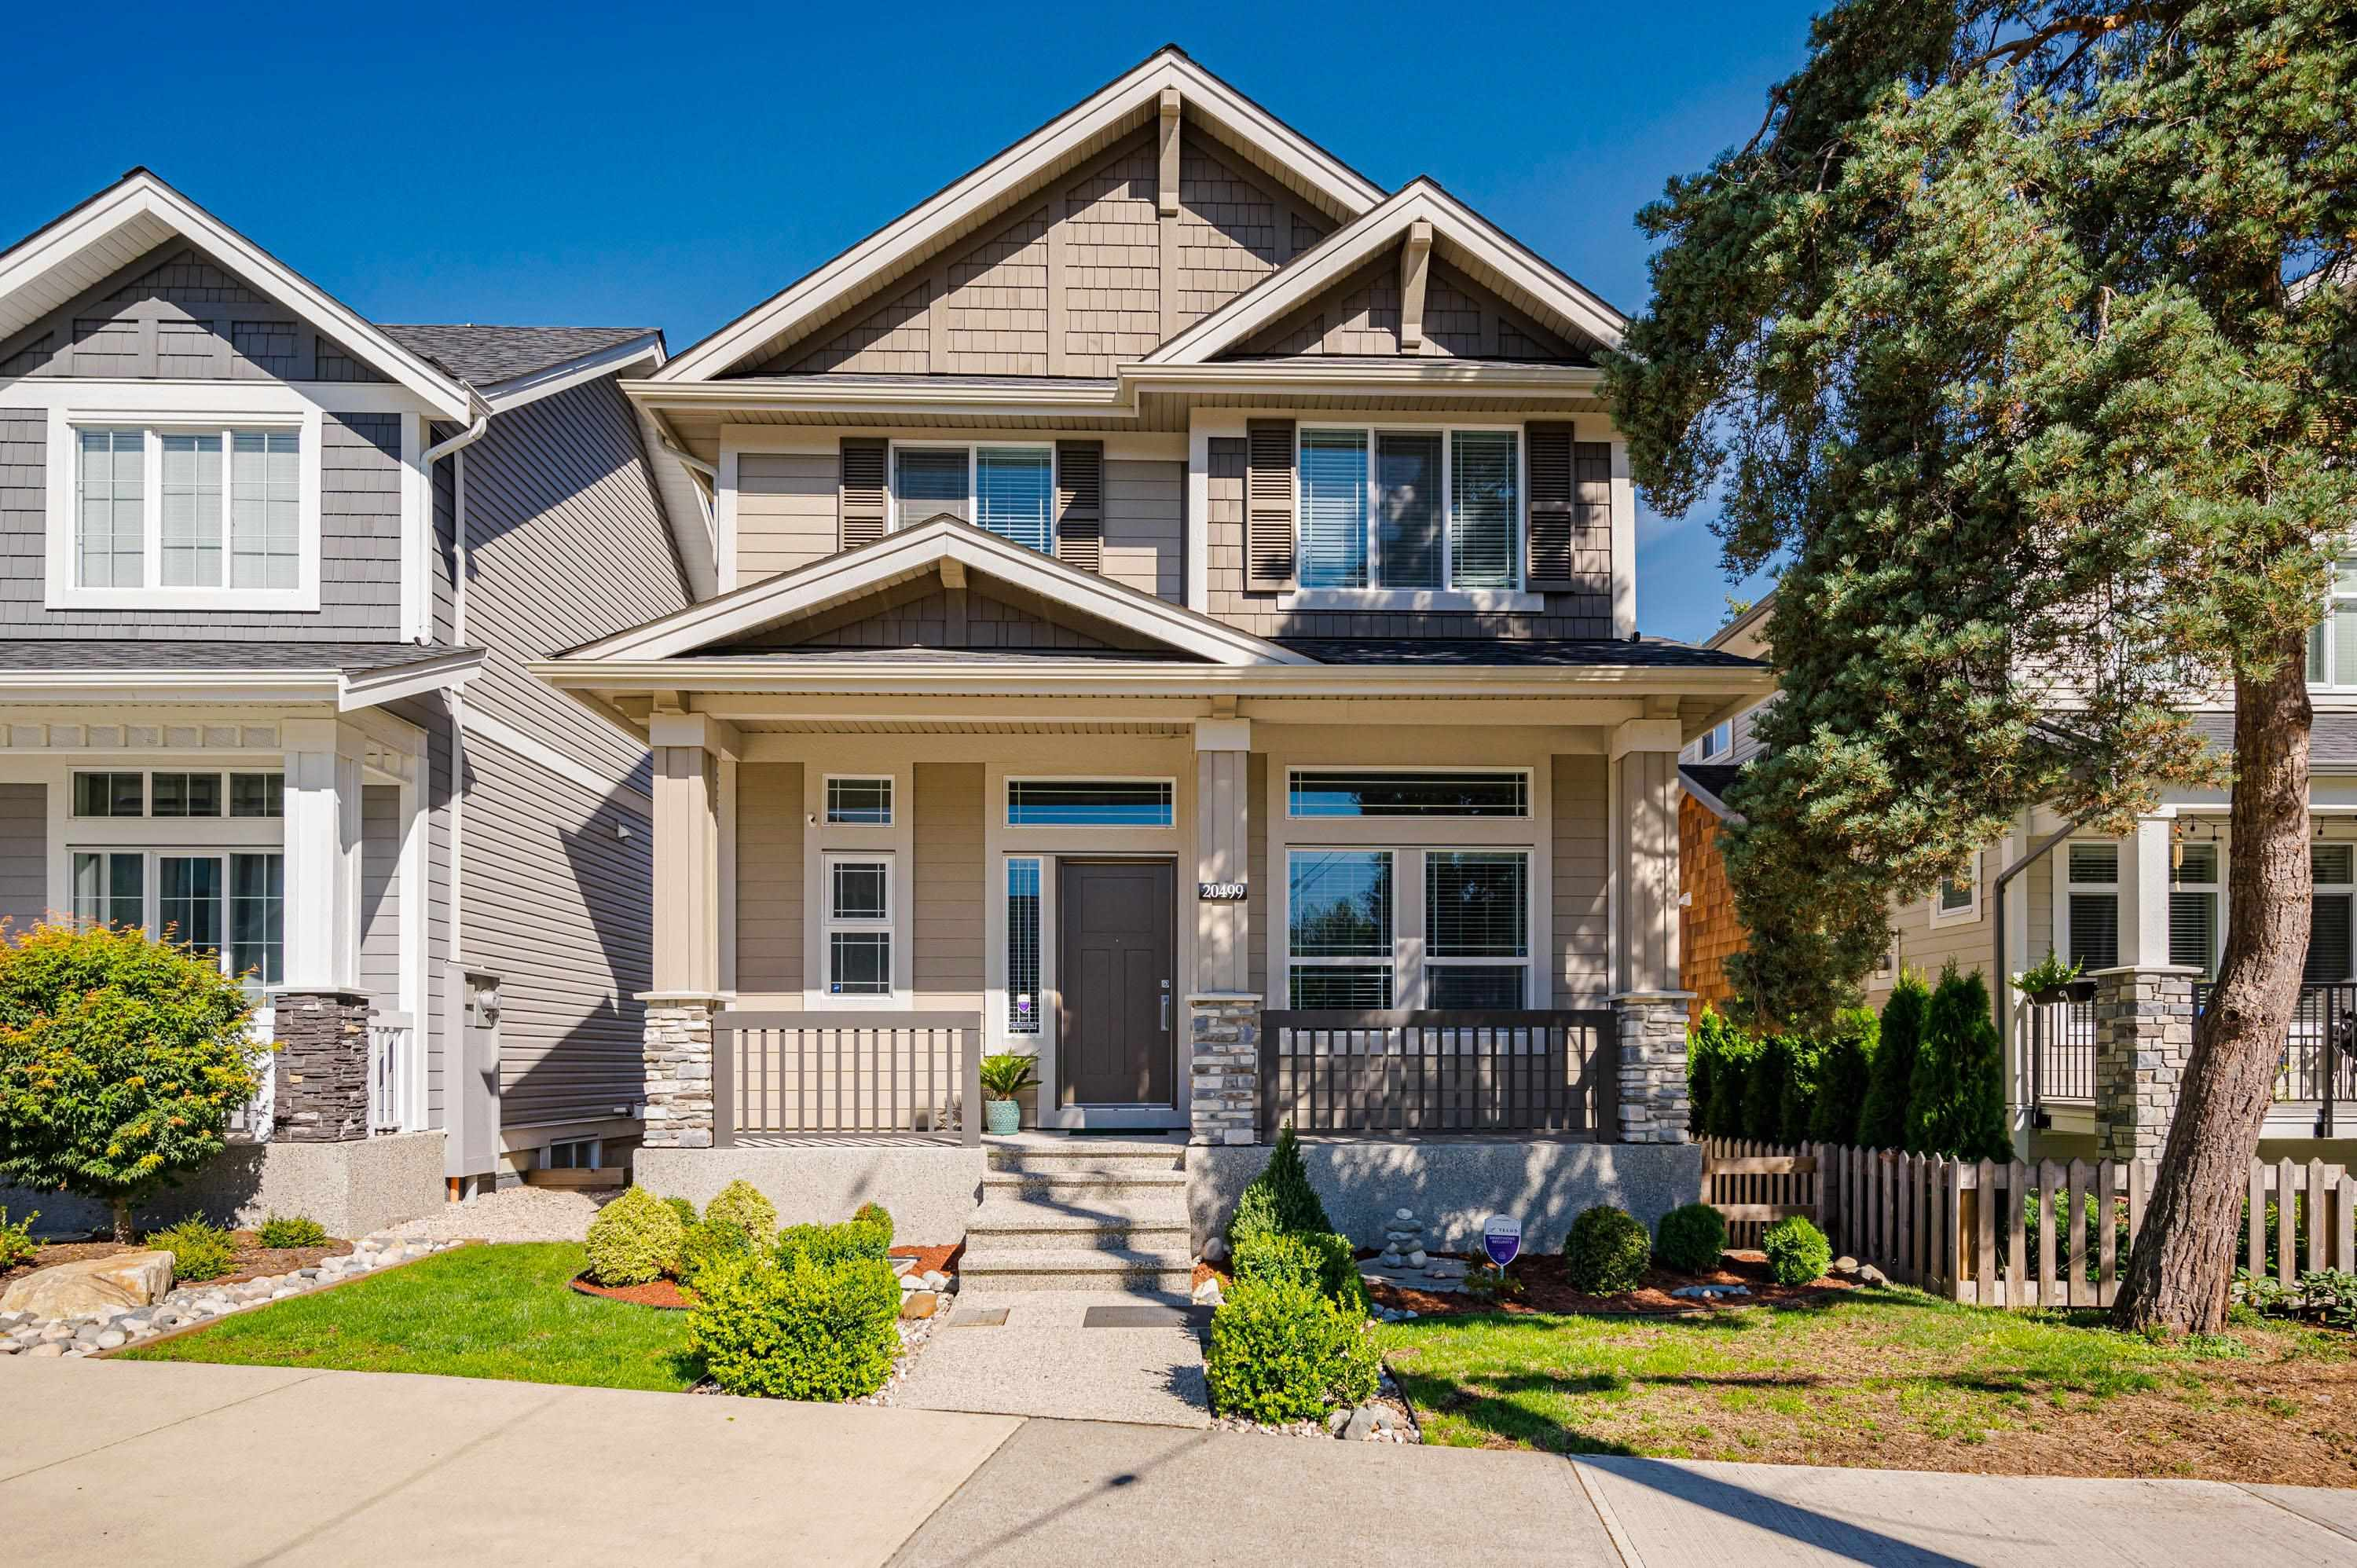 20499 82 AVENUE - Willoughby Heights House/Single Family for sale, 4 Bedrooms (R2619702) - #1